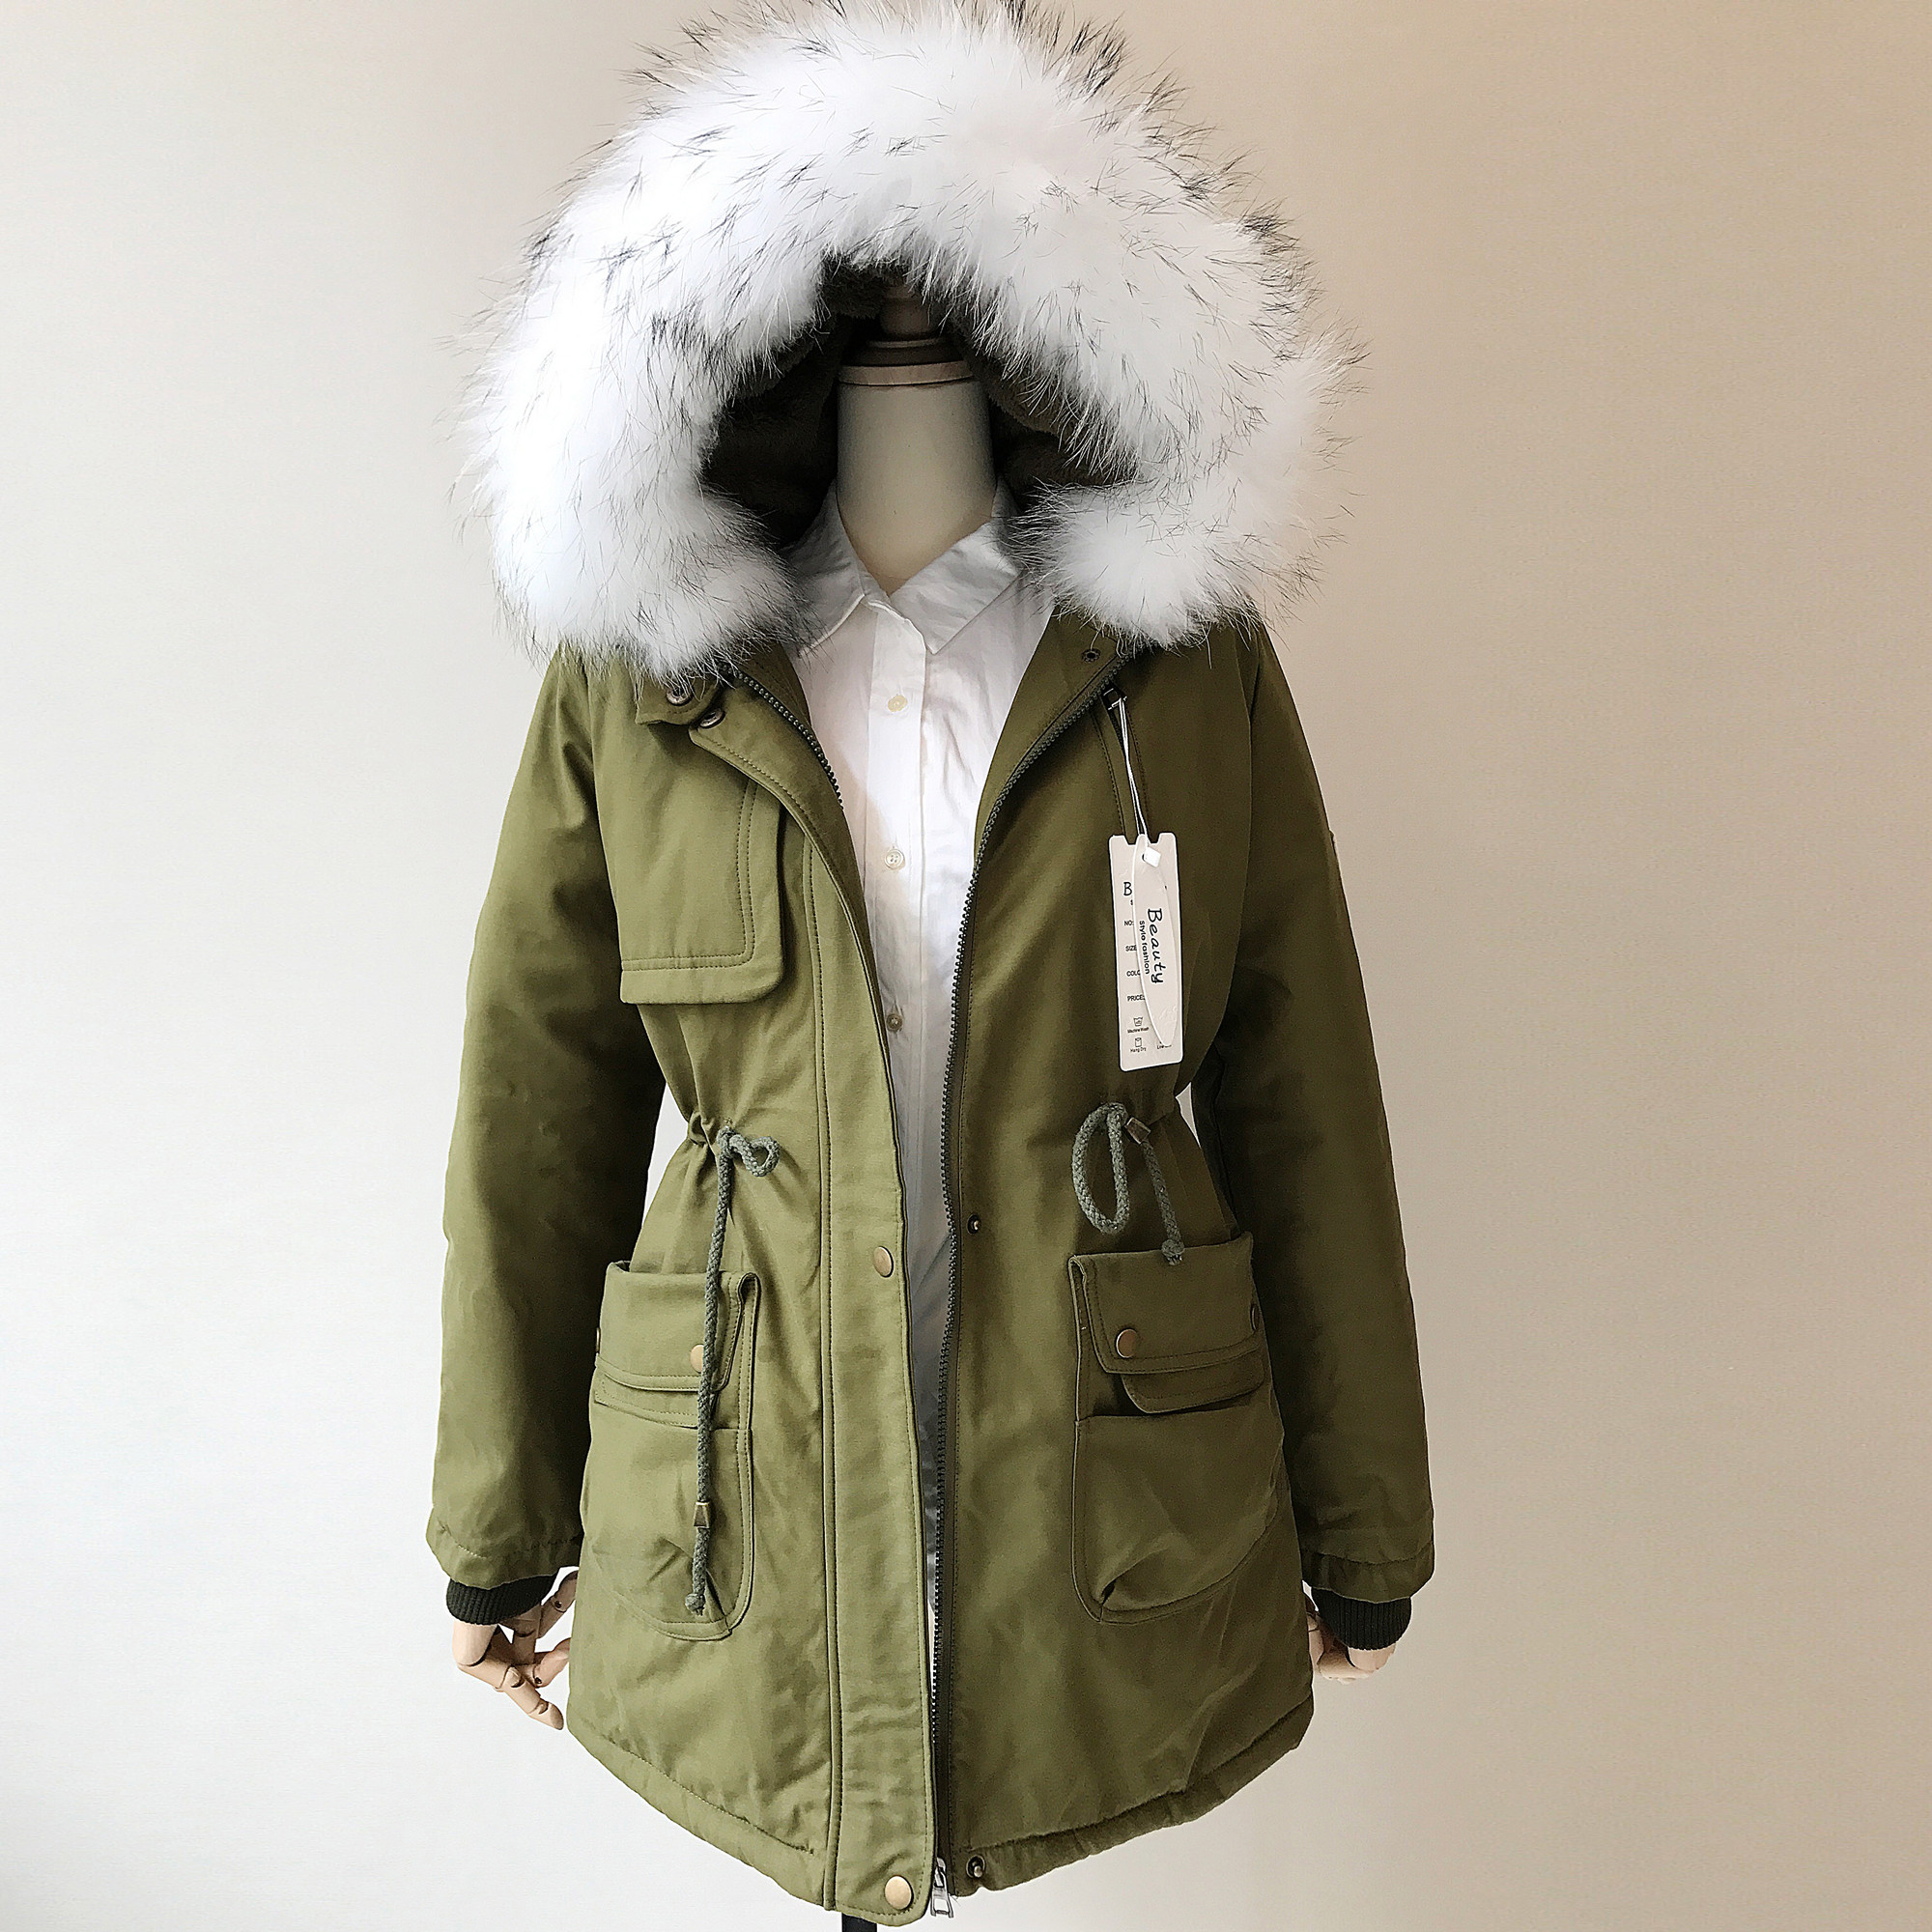 2017 Winter Fashion Women Cotton-padded Jackets Real White Fox Fur Collar Hooded Coat Thick Medium-long Lambswool Wadded Jacket women s clothing real fur collar winter jacket women 2015 new fashion thick winter coat female cotton padded jacket wadded coat